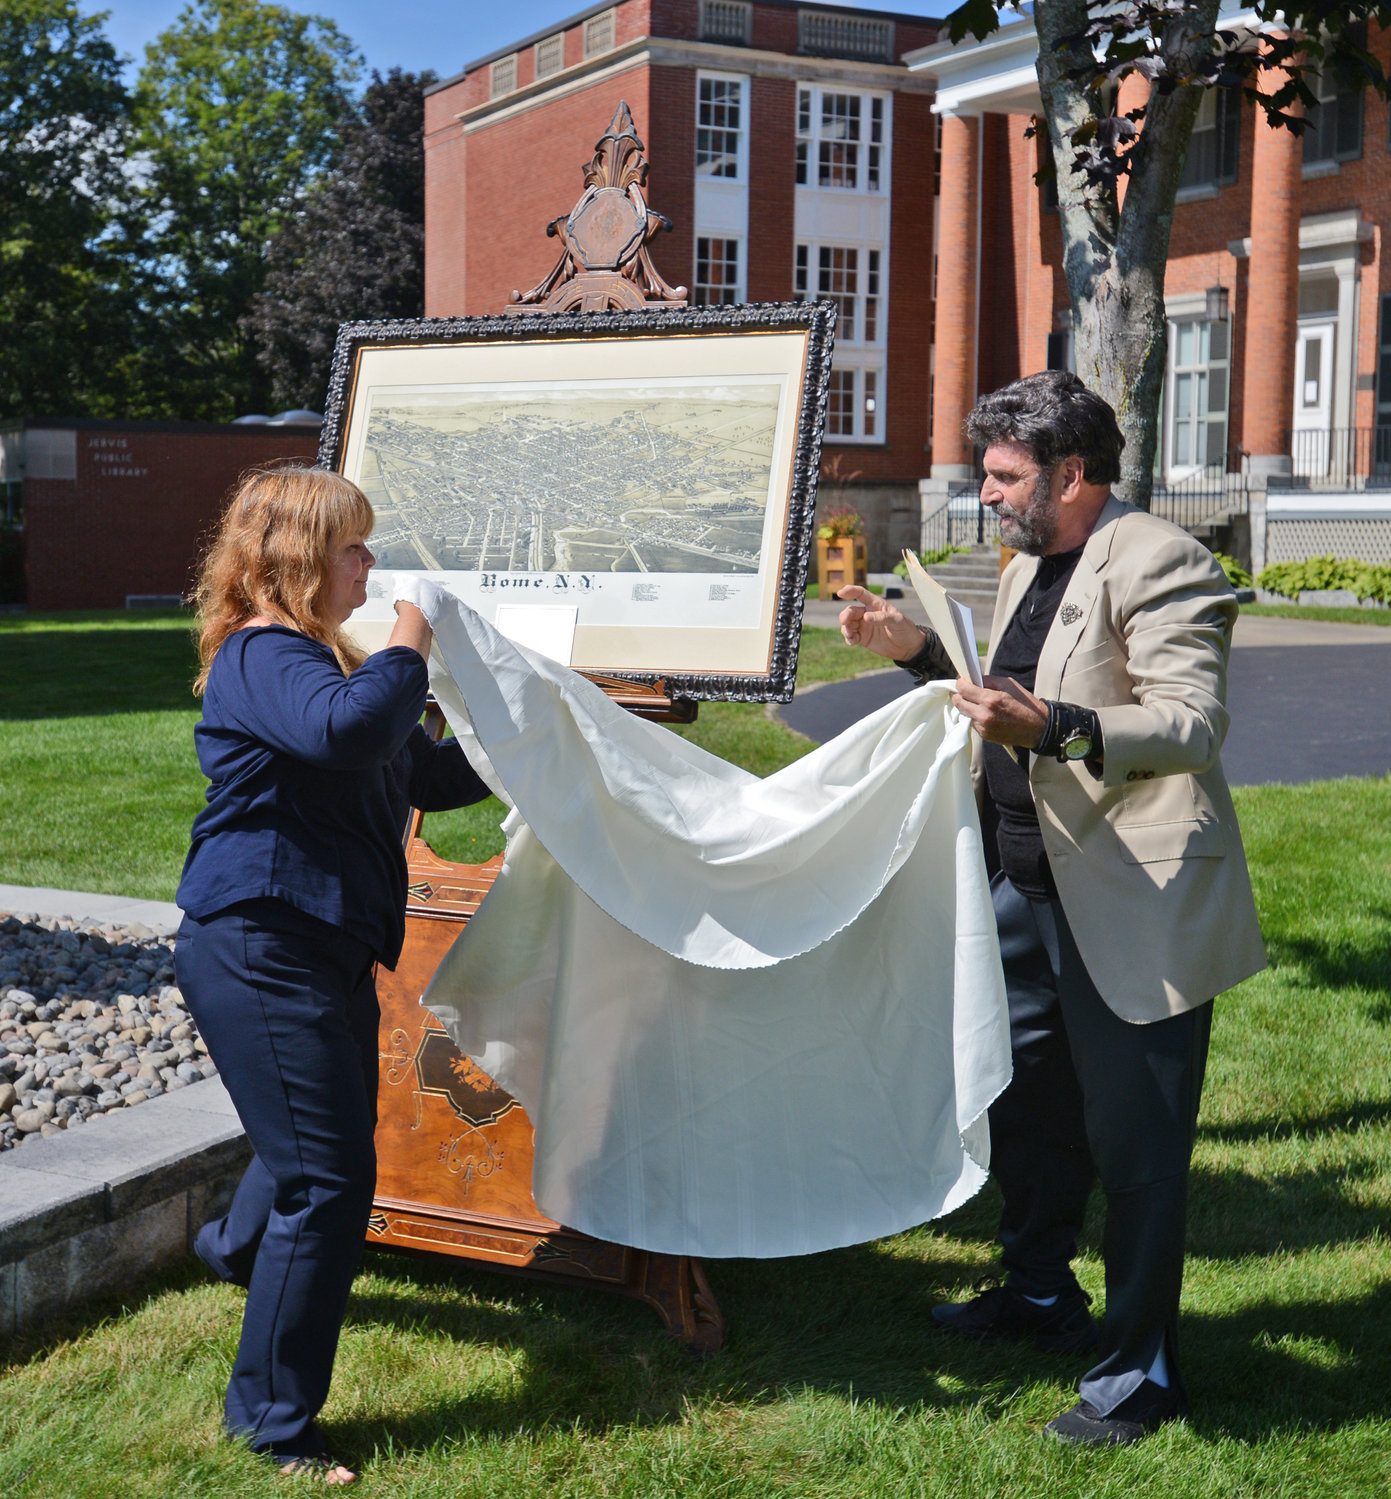 UNVEILING — Lori Chen and Steven Strange unveil the 1886 Lithograph map of Rome that was donated to Jervis Library and will be displayed in the Dillon Room.